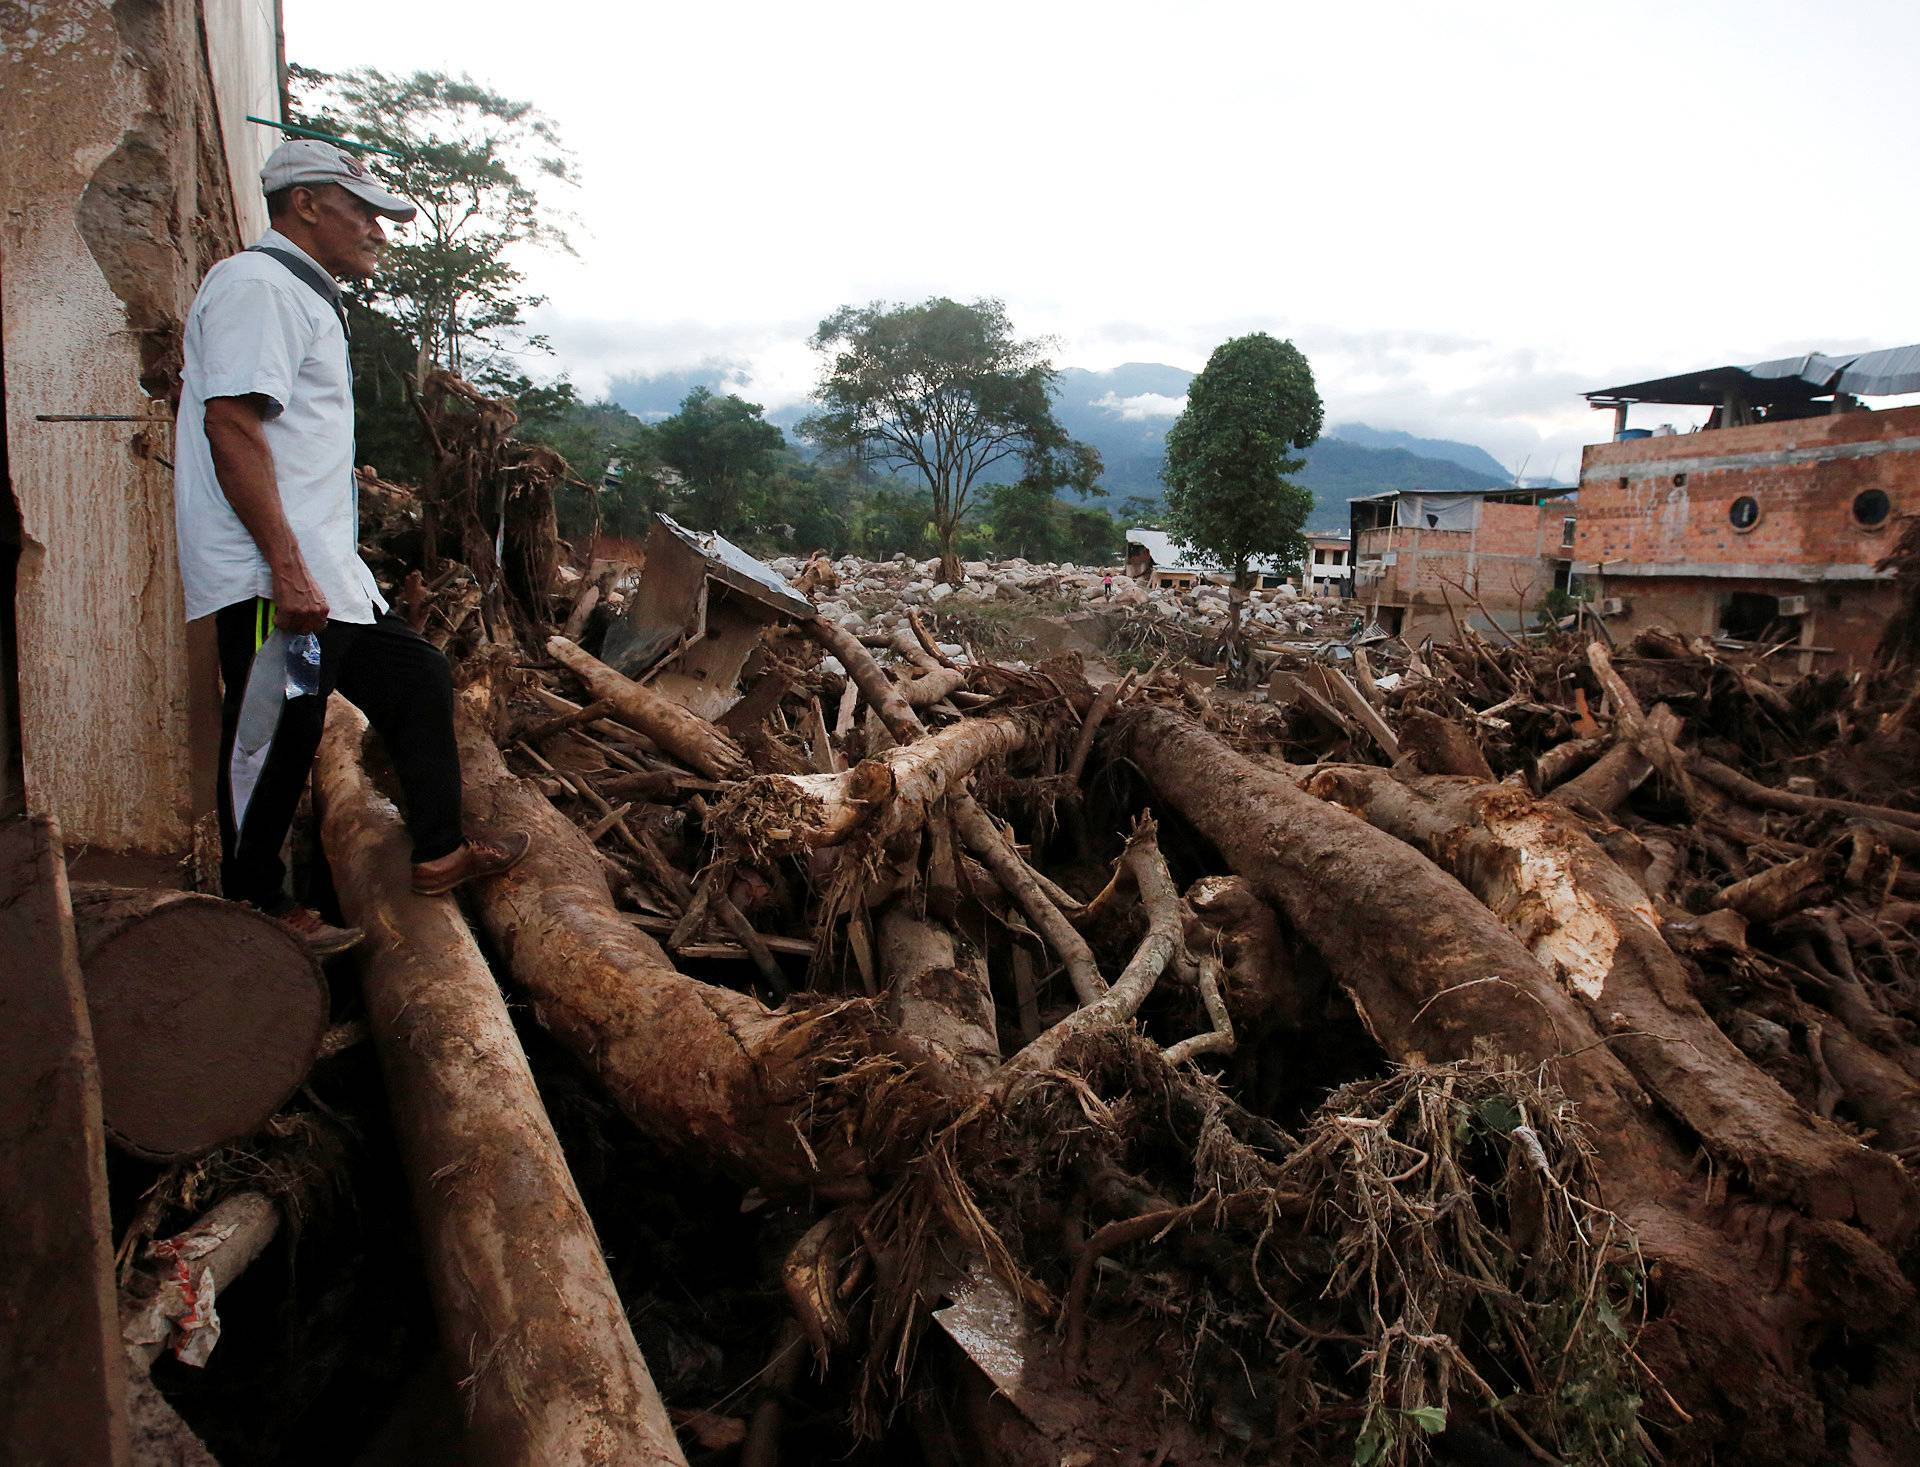 A man looks at a destroyed area after heavy rains caused several rivers to overflow, pushing sediment and rocks into buildings and roads in Mocoa